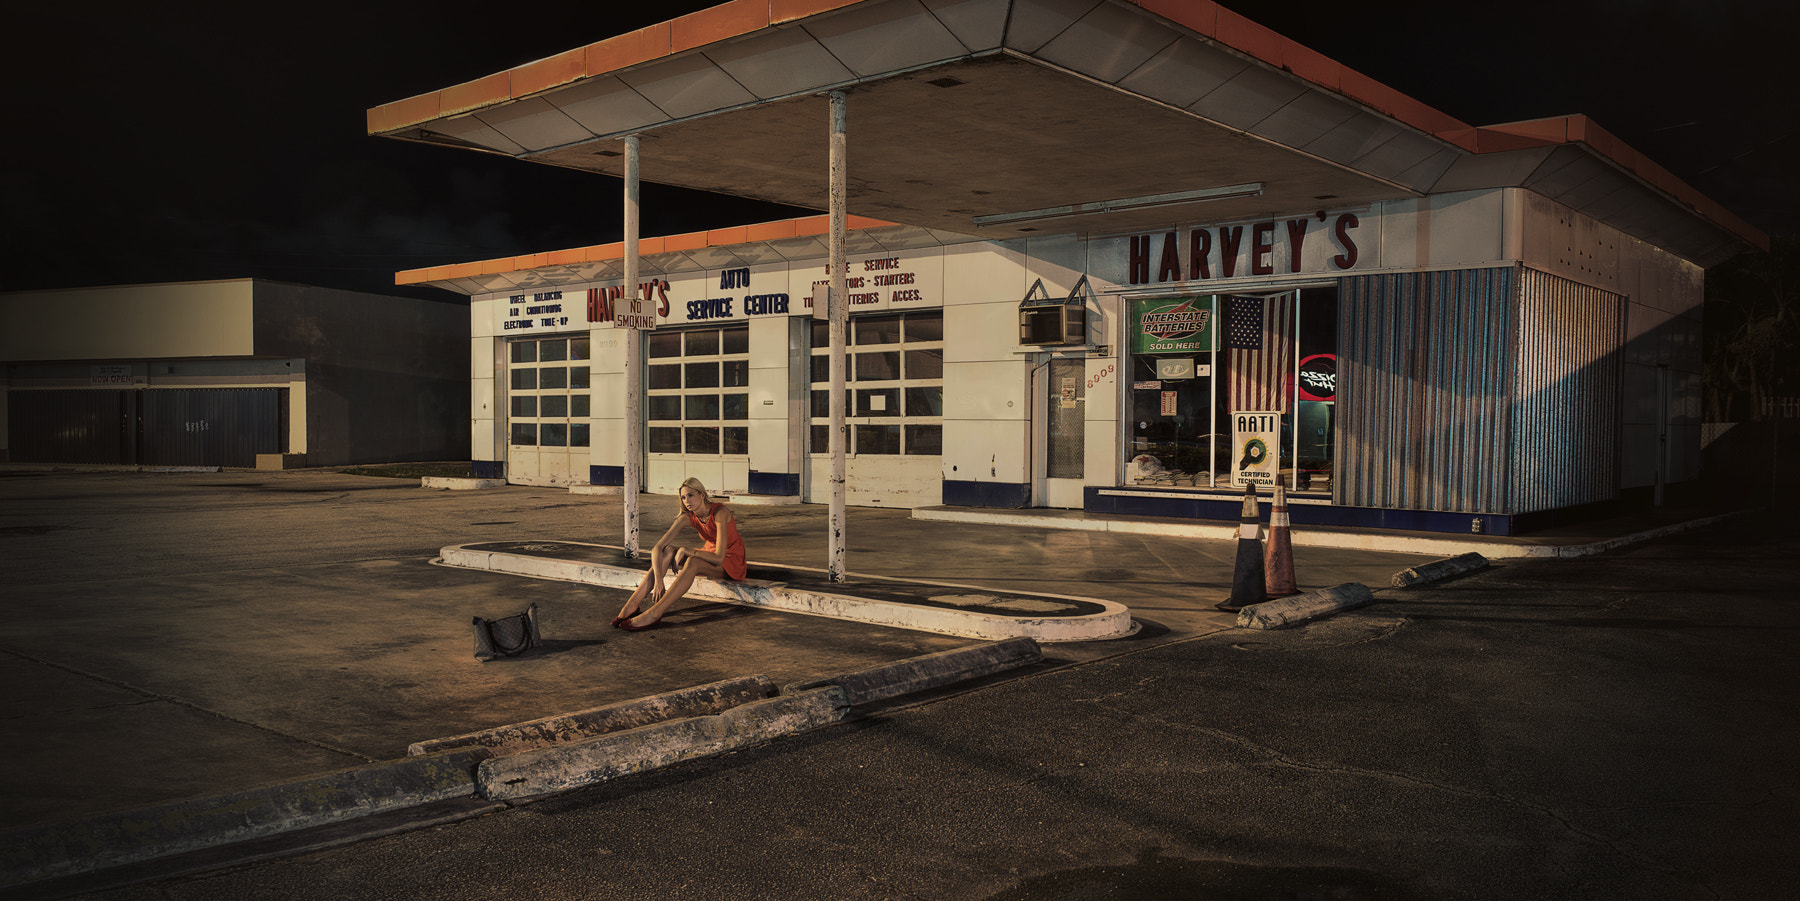 Photograph Lost in Station, Miami (FL) by Julien Dumas on 500px